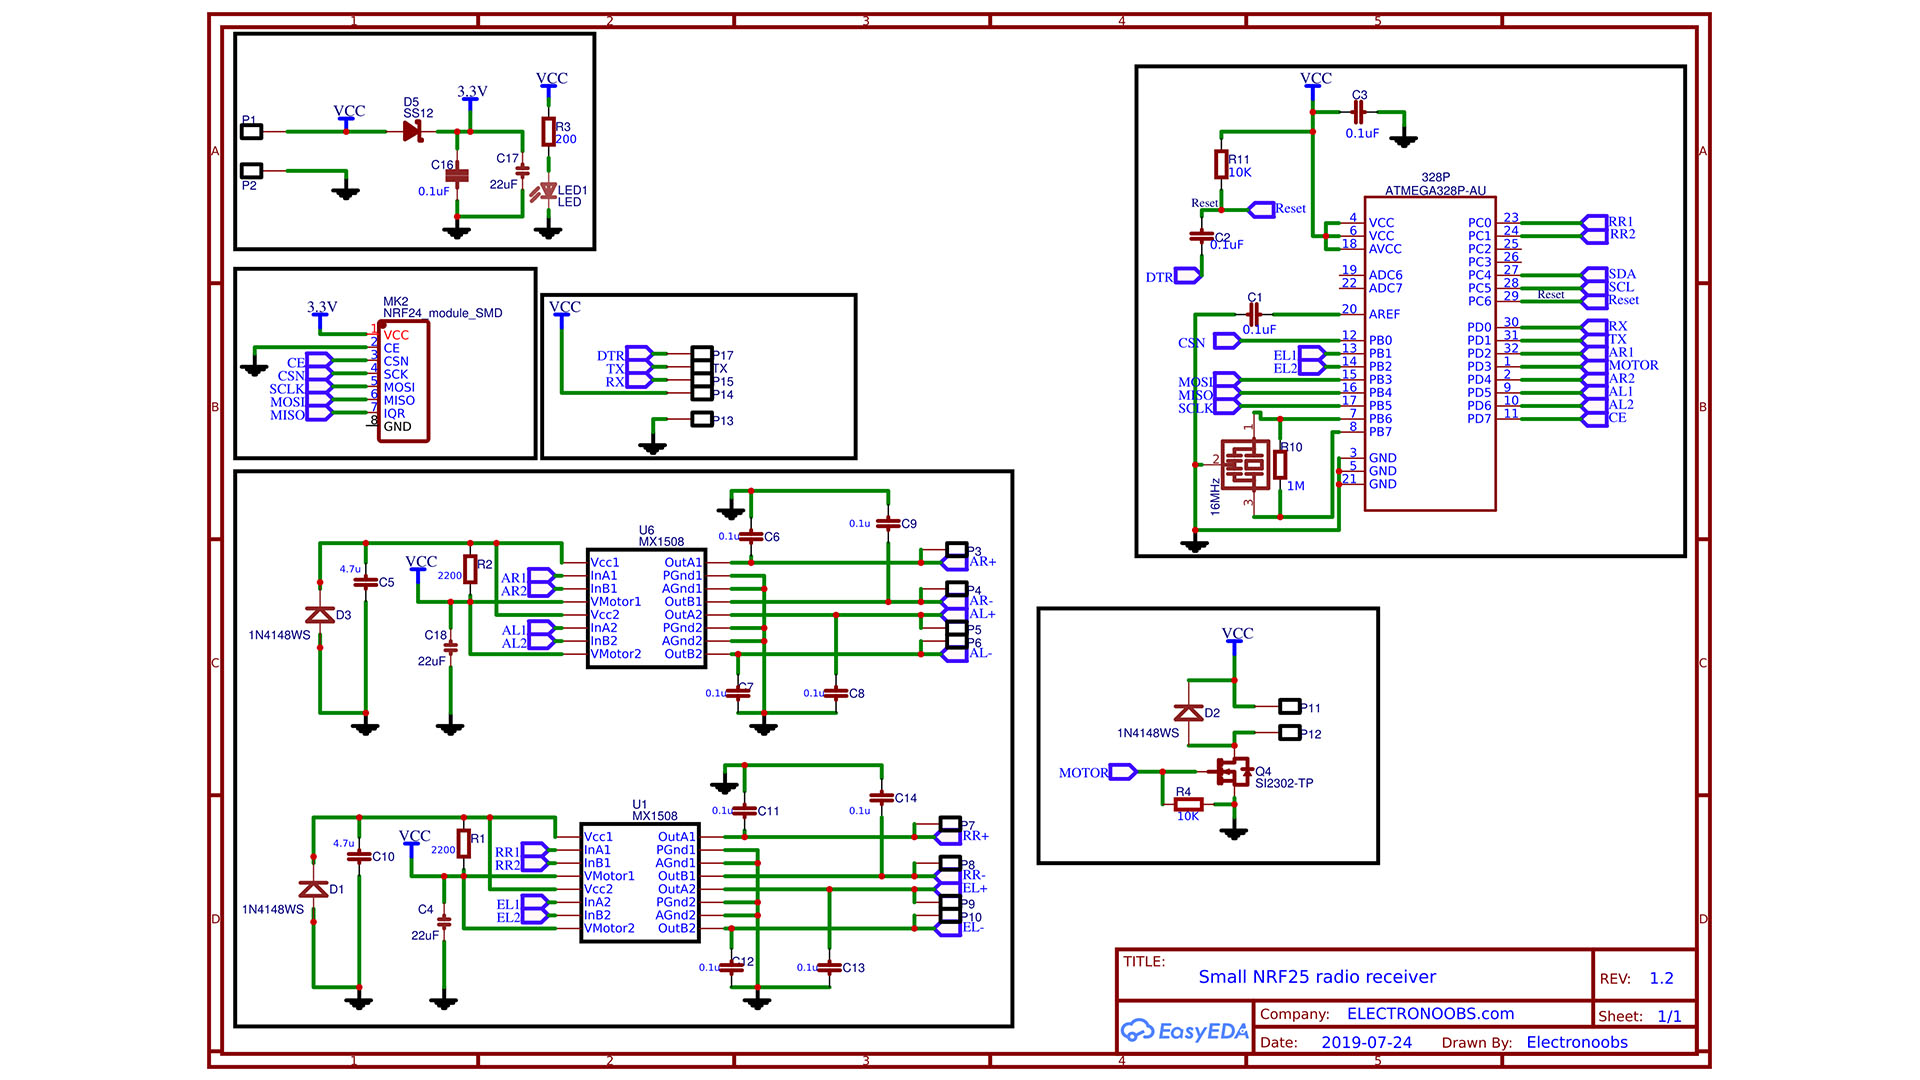 Arduino schematic NRF24 small SMD receiver PCB